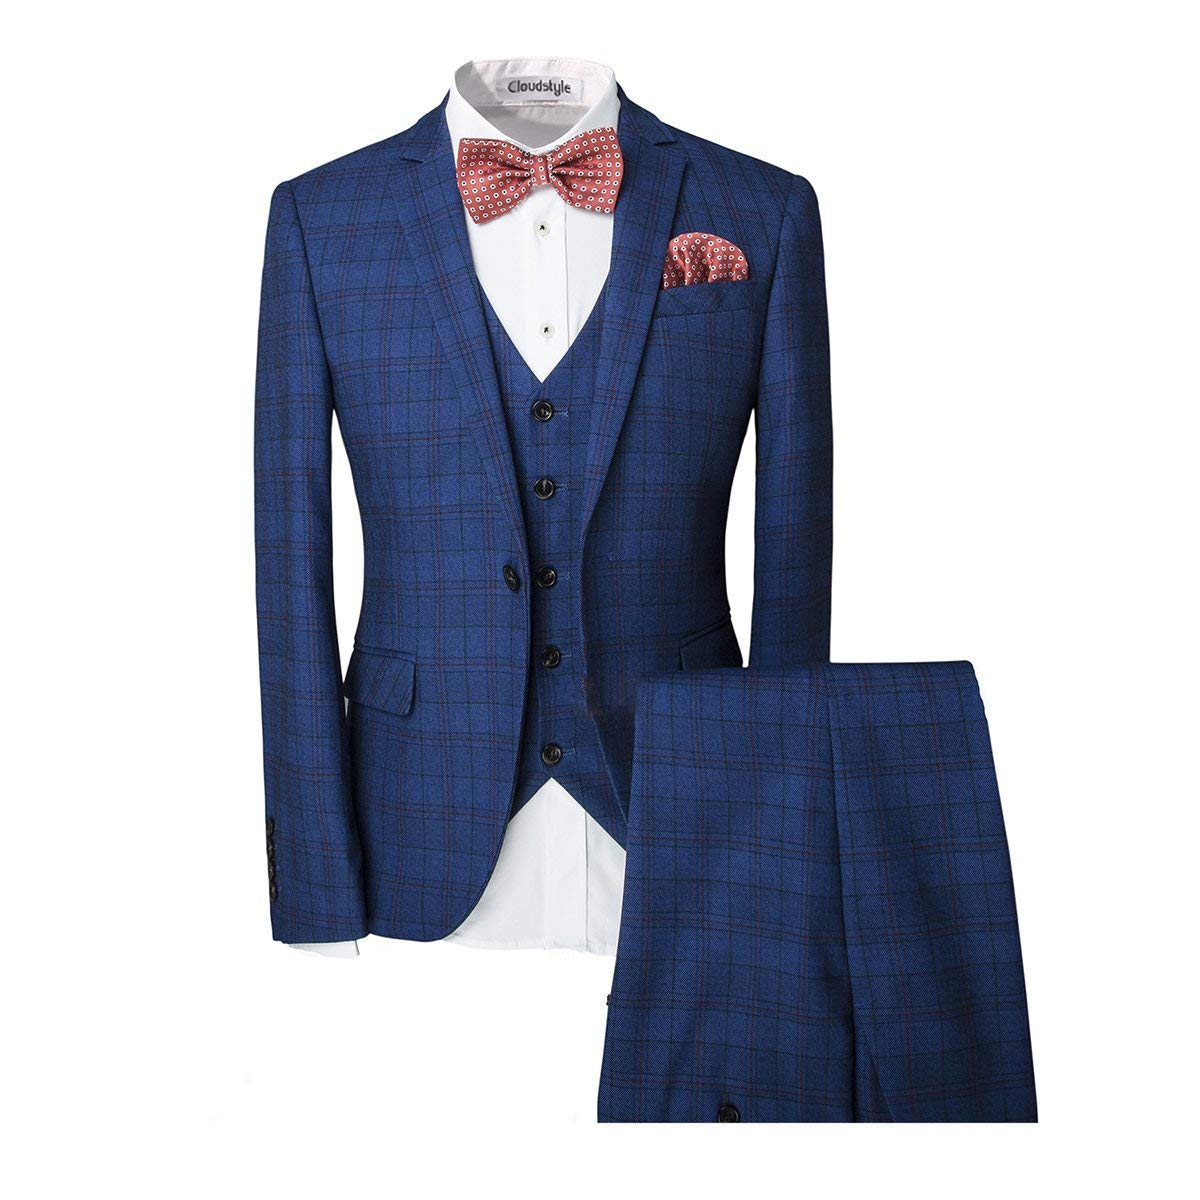 Tailored Jacket With Twin Buttons Mens One Button Designer Luxurious Suits Plaid Tuxedos 3 Piece Set At Amazon Clothing Store